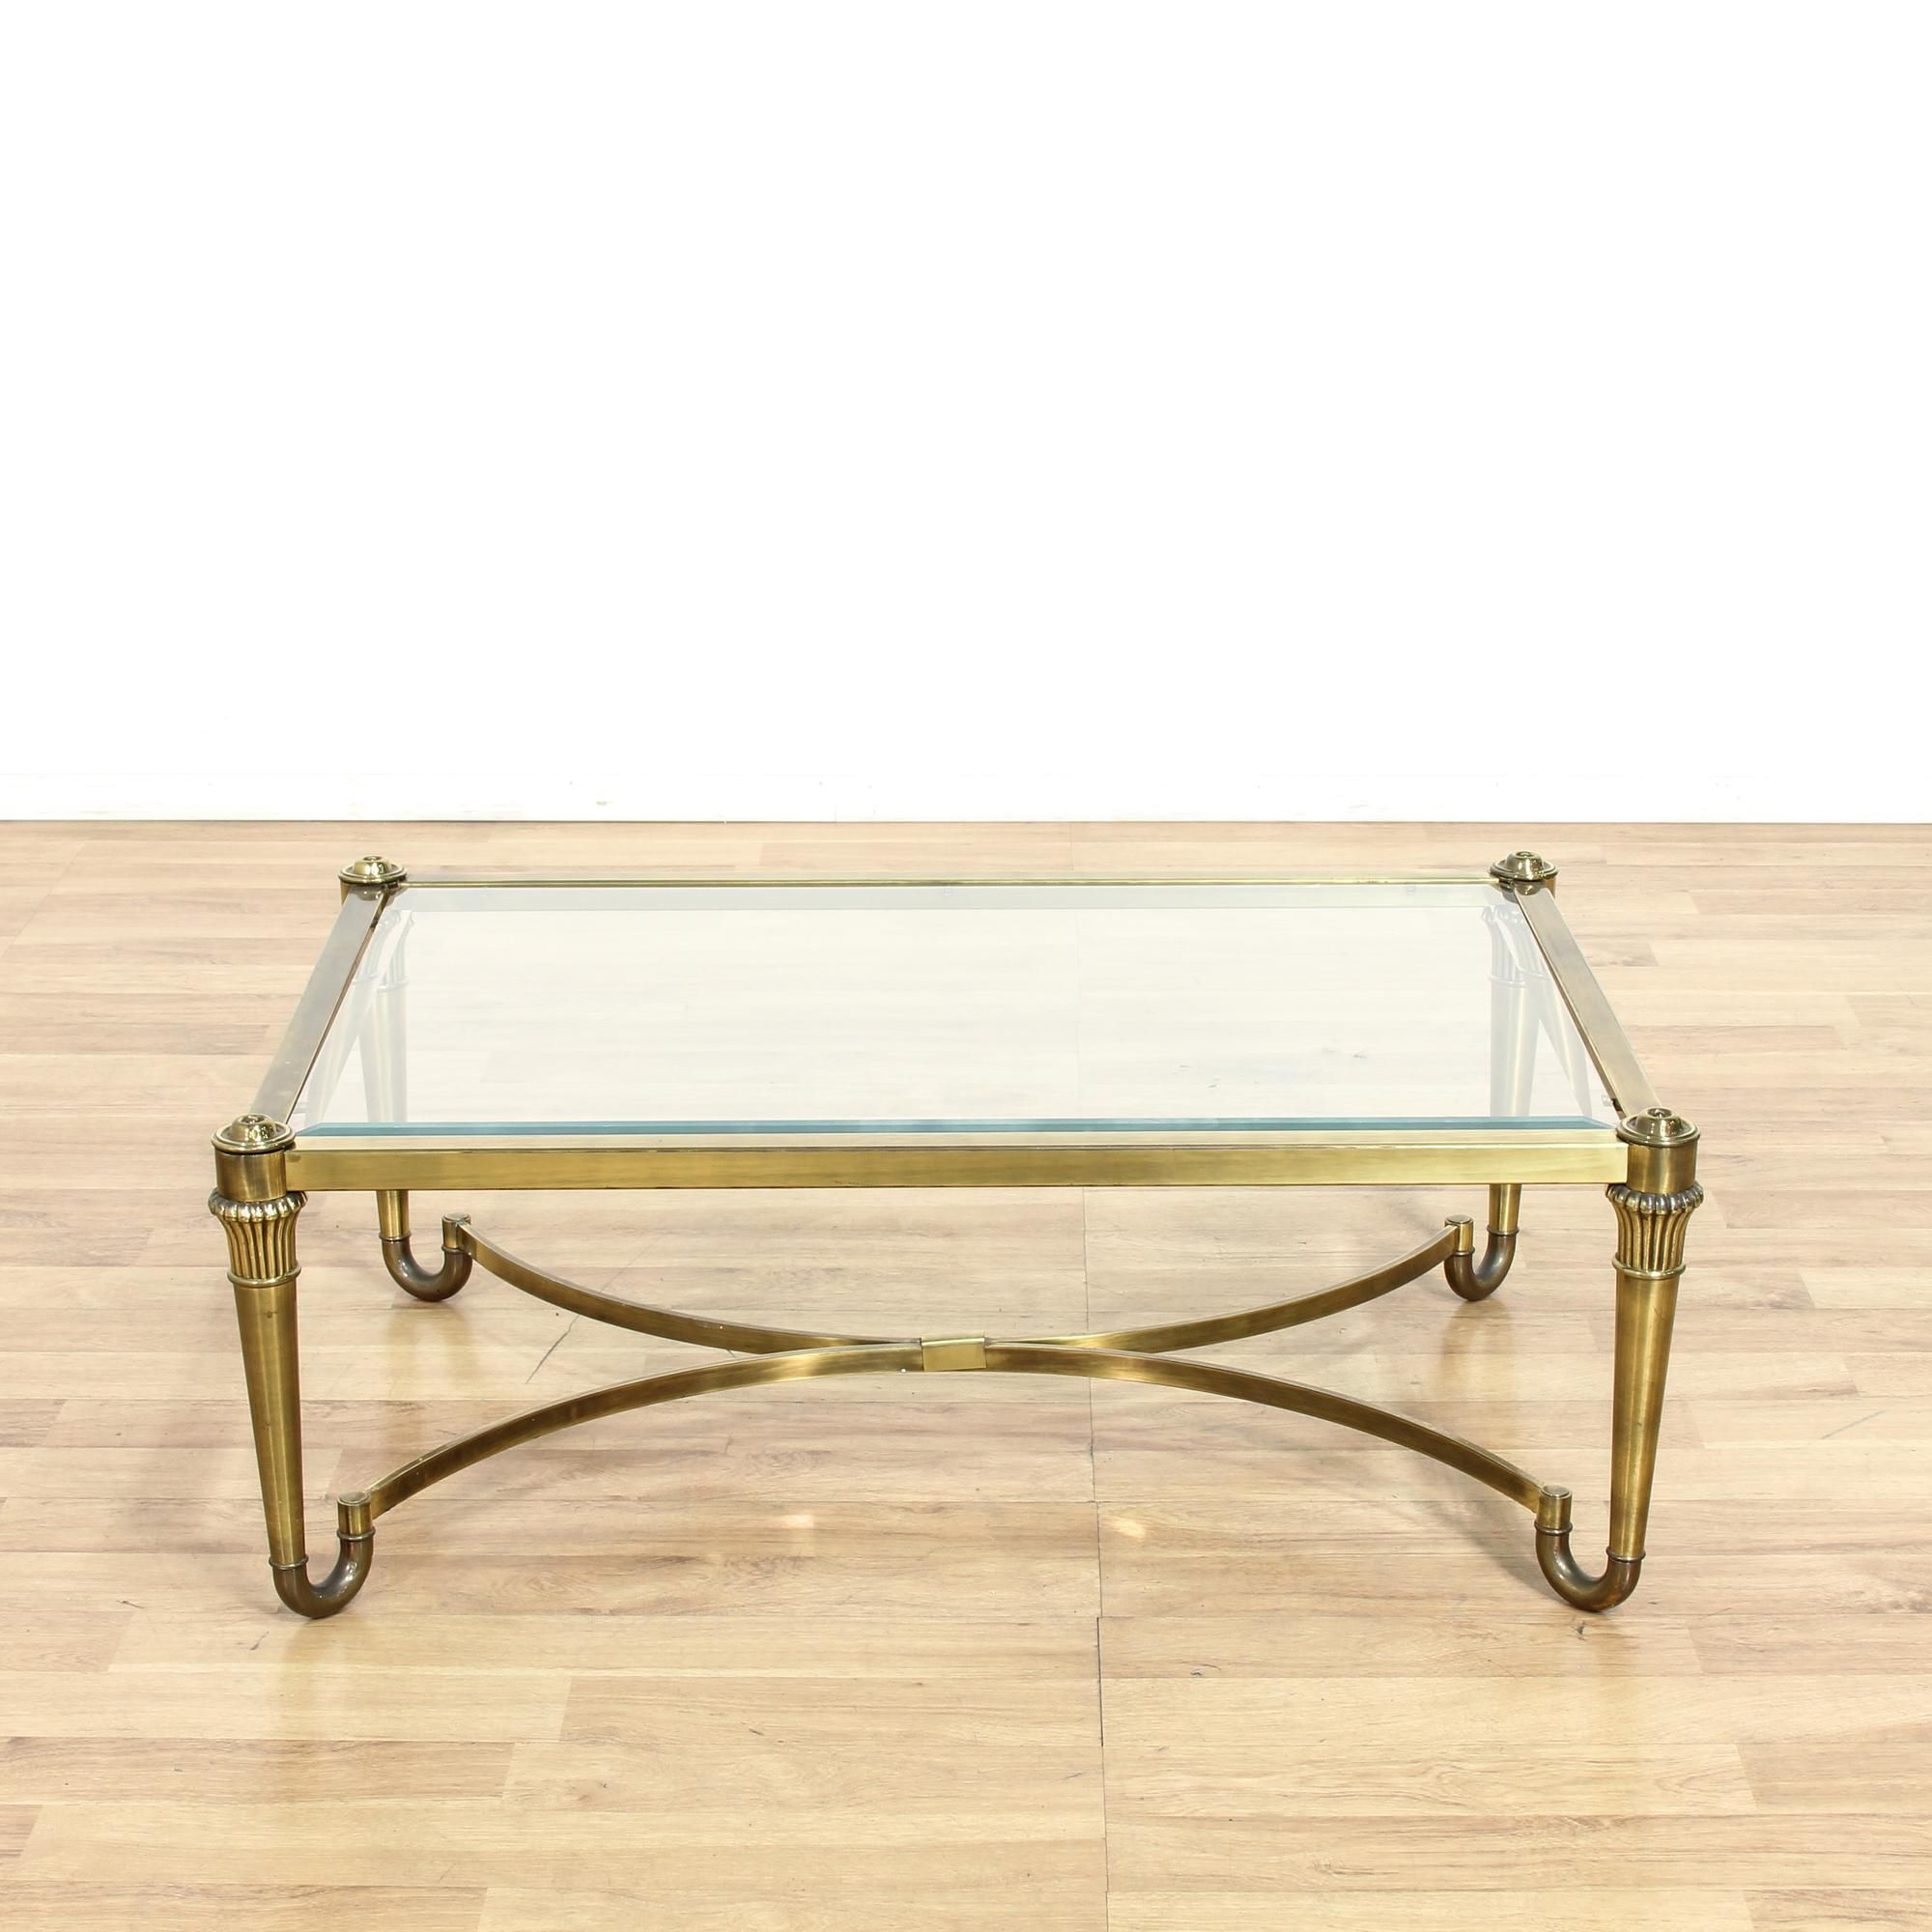 Elke Glass Console Tables With Brass Base Intended For Most Recent This Hollywood Regency Coffee Table Is Featured In A Durable Metal (View 13 of 20)